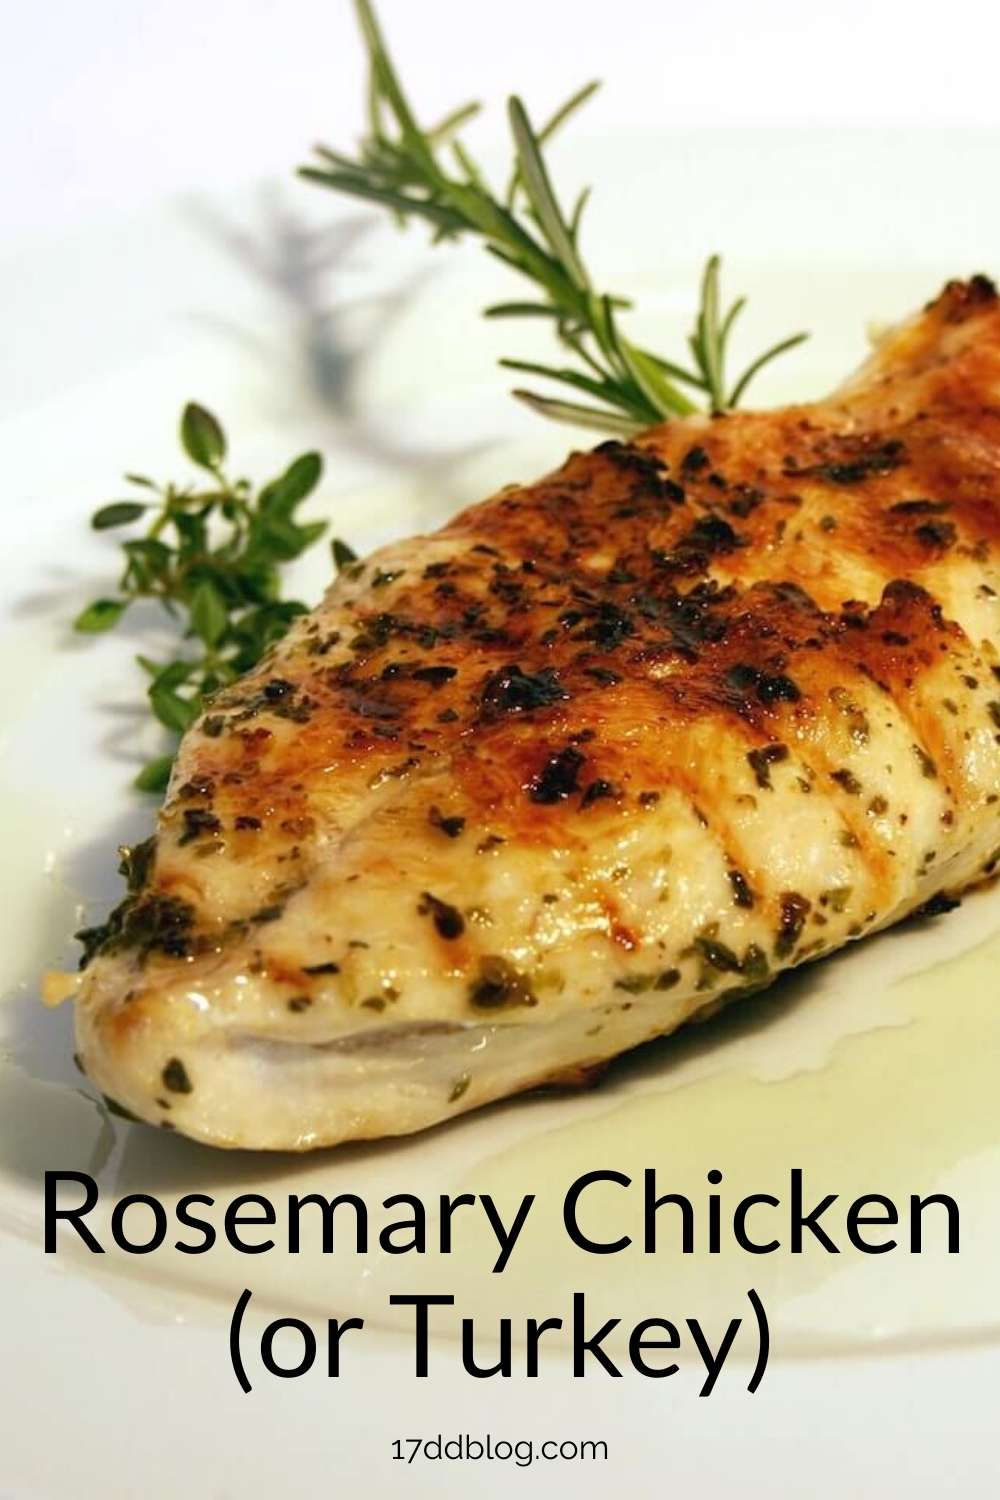 Skip The Long Bake Times With This Super Simple Healthy Rosemary Chicken Or Turkey Recipe For Y In 2020 Baked Buttermilk Chicken Buttermilk Recipes Chicken Recipes